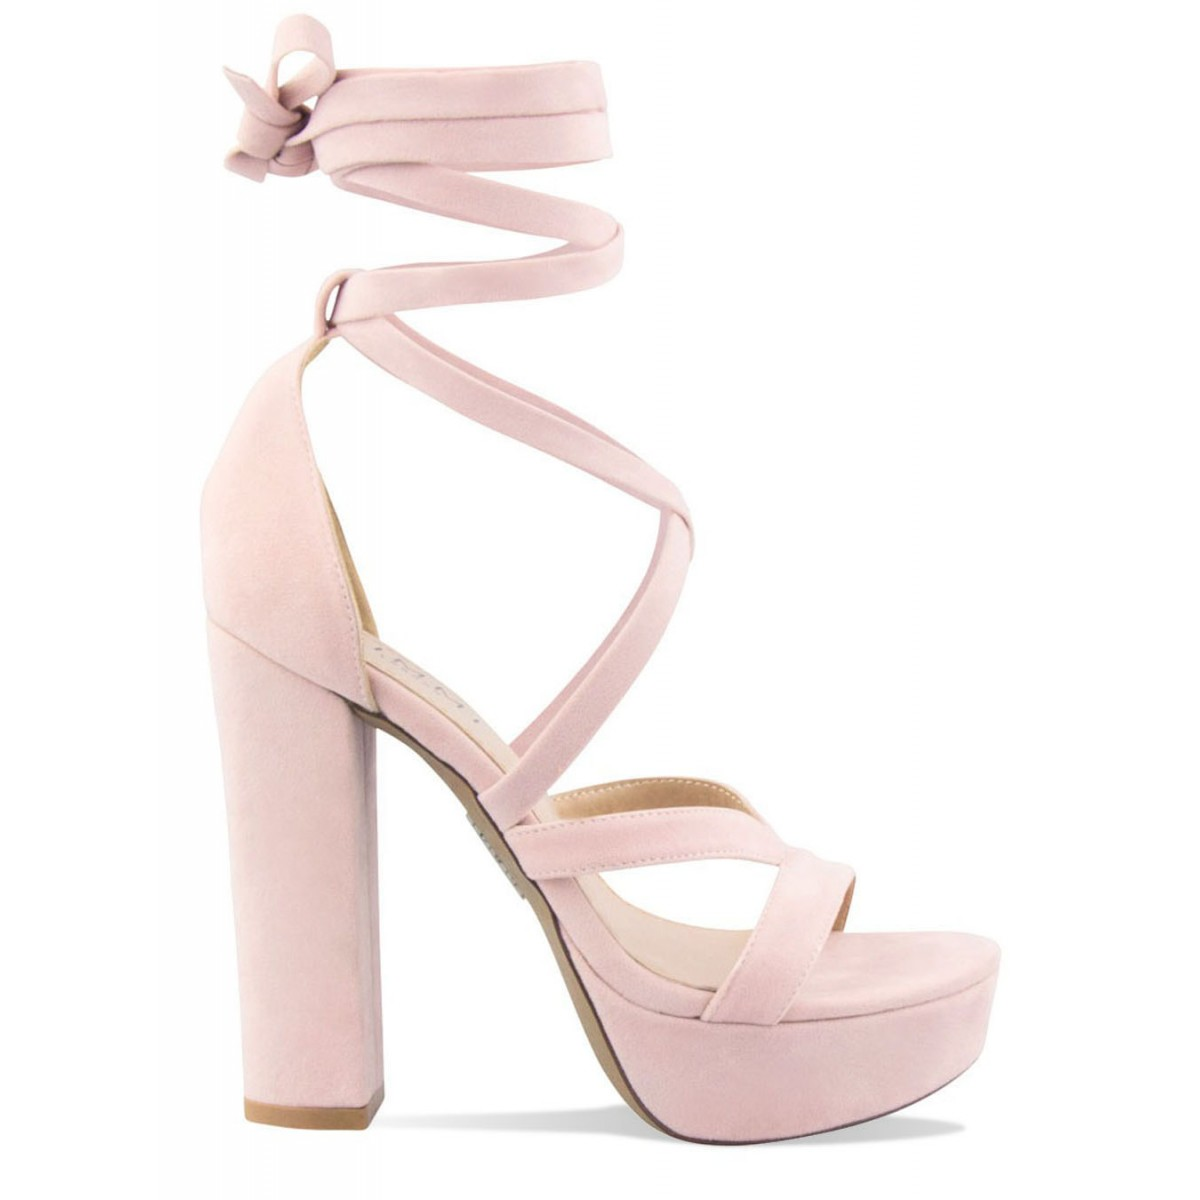 Pink Suede Lace Up Platform Heels : Simmi Shoes - Love Your Shoes!